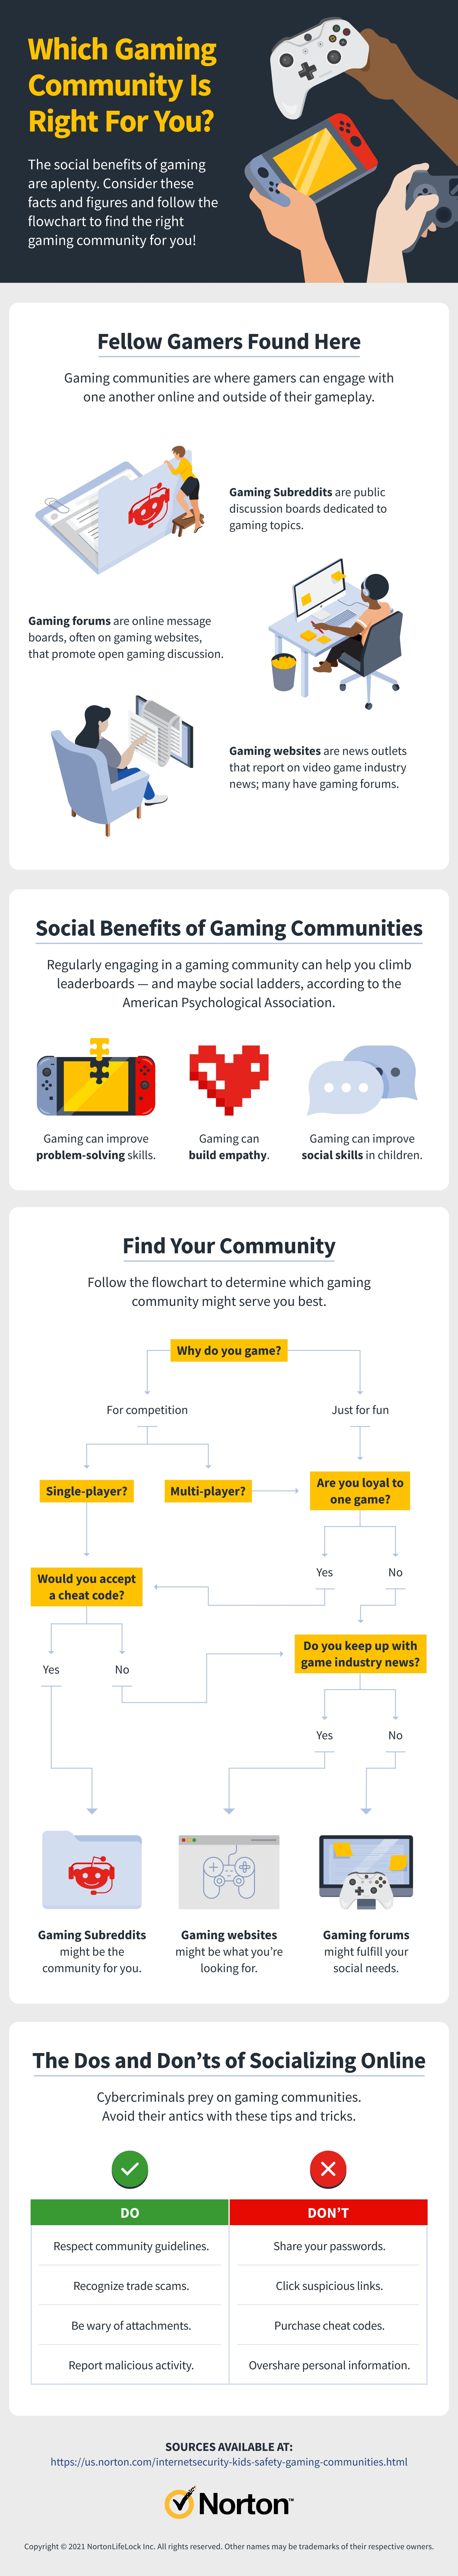 in infographic, courtesy of Norton, overviews what is a gaming community, common times, plus a flowchart to determine which gaming community is right for you